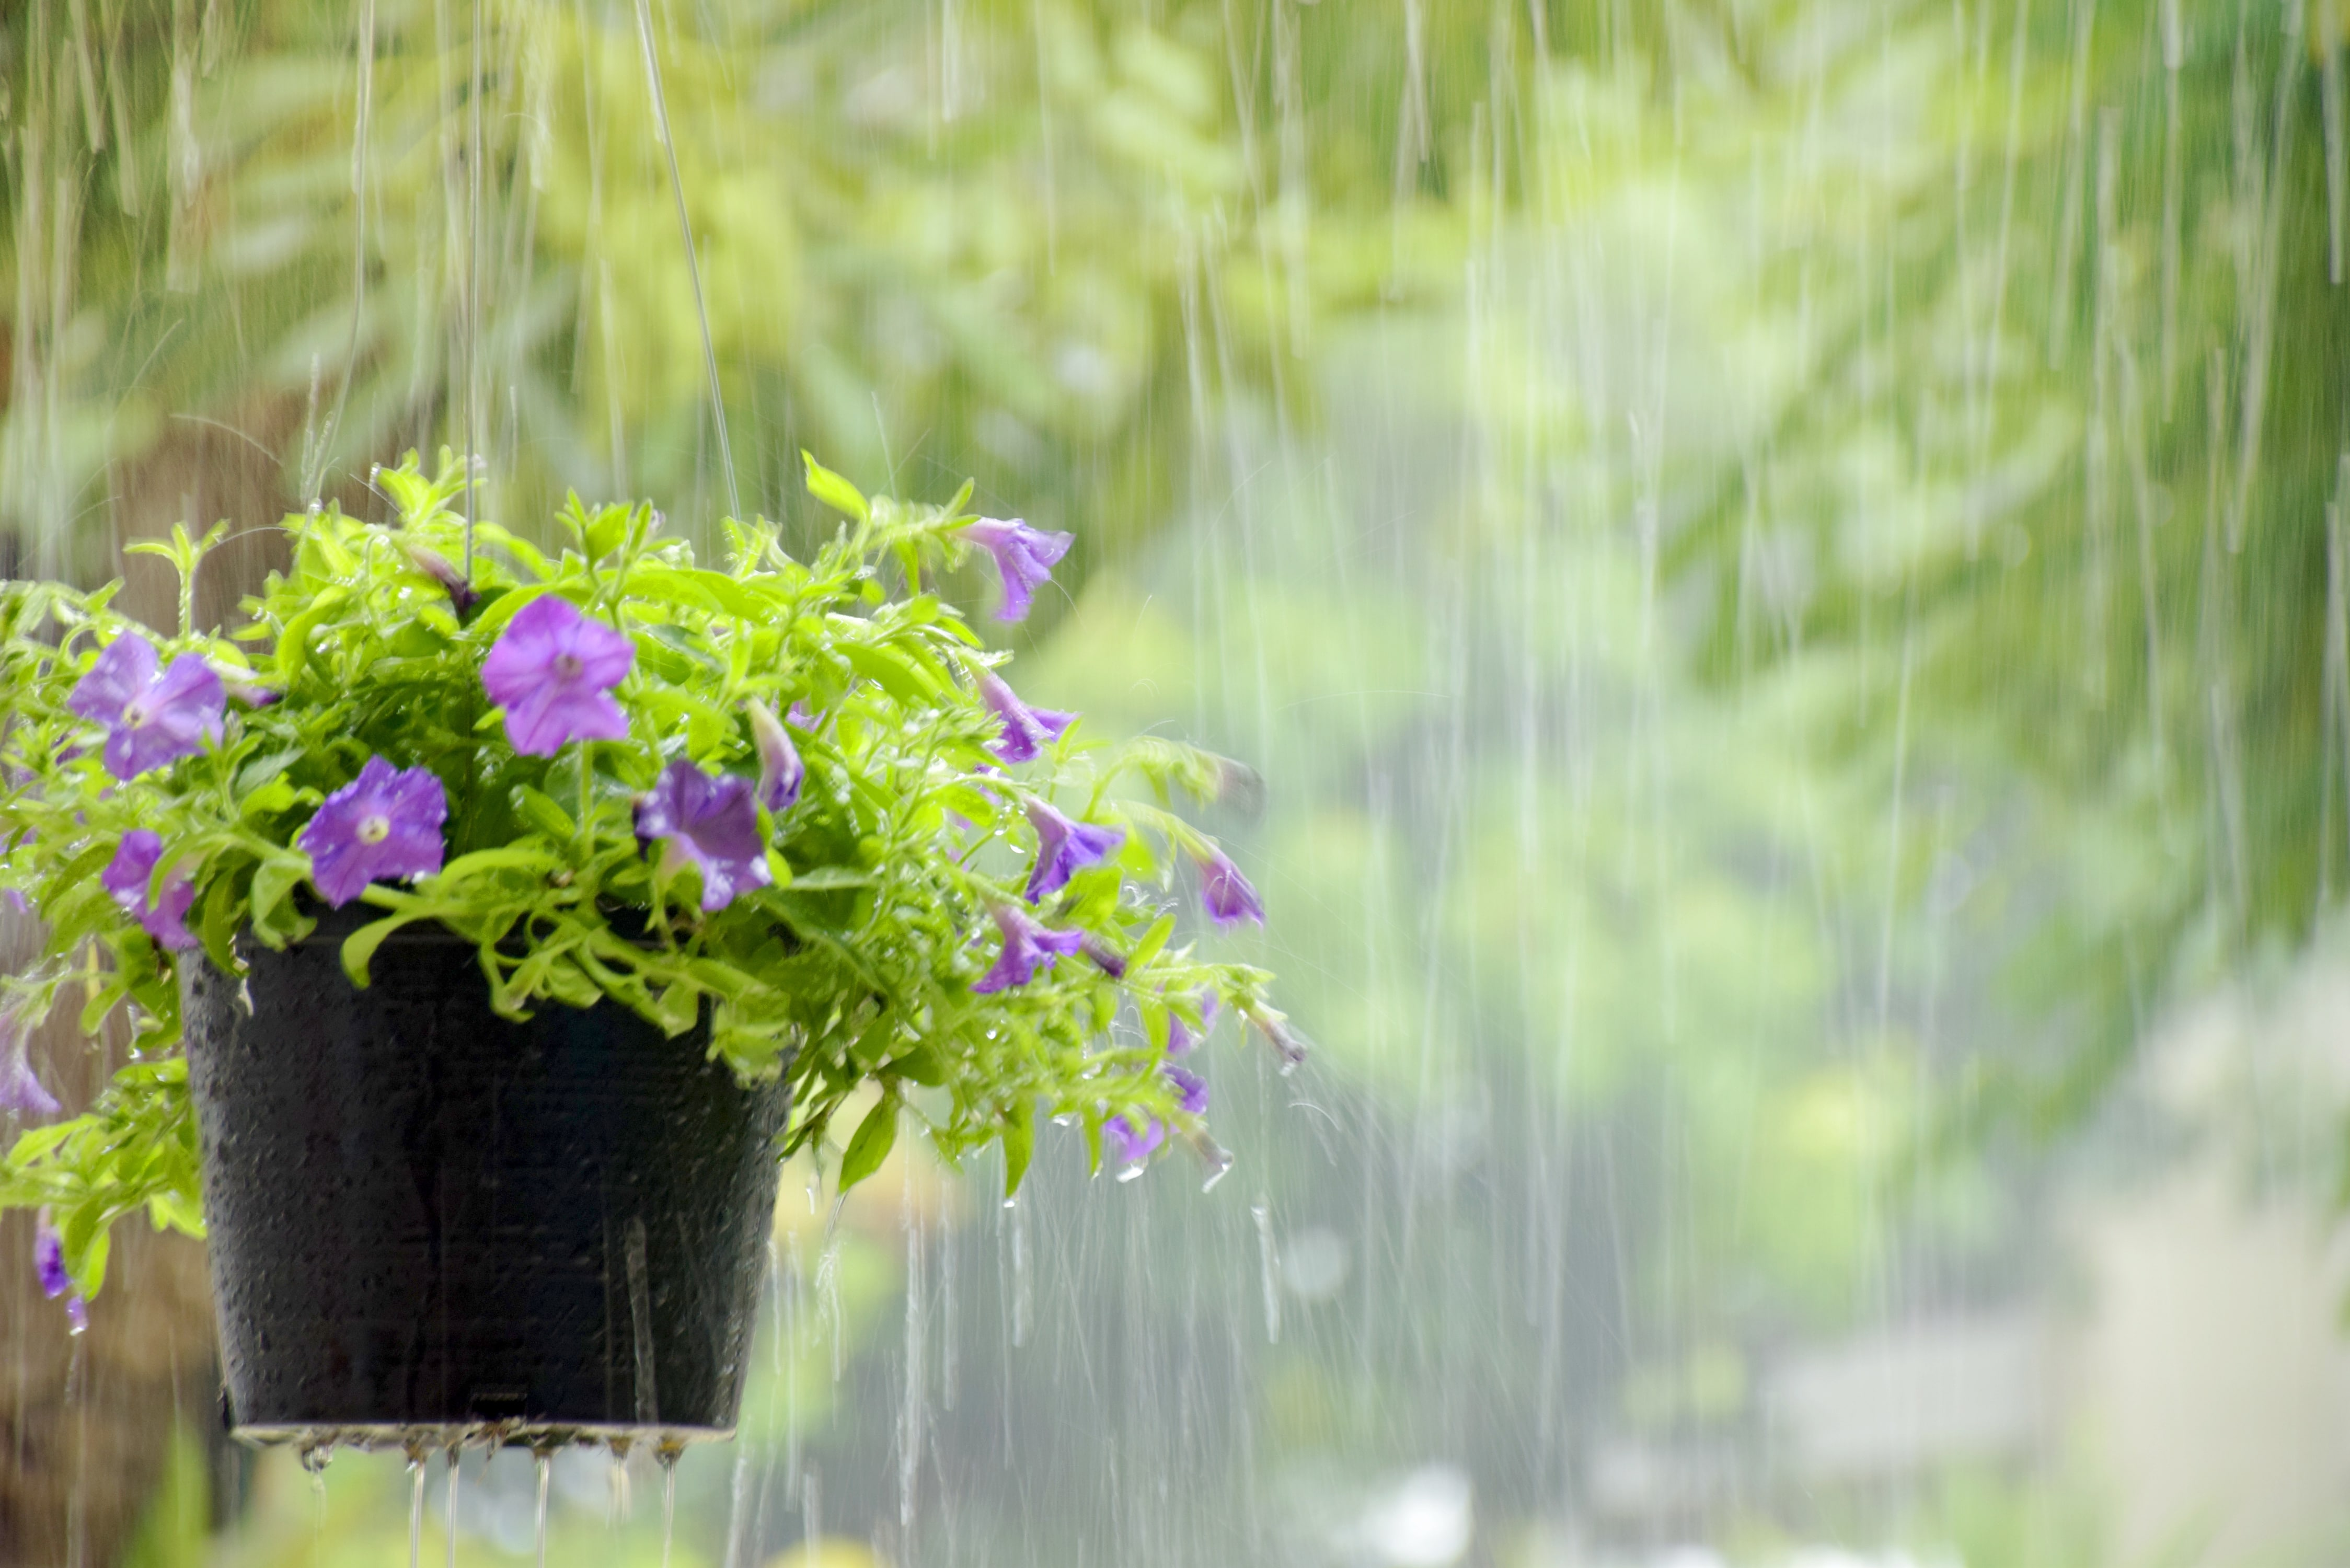 Flower pot in the rain